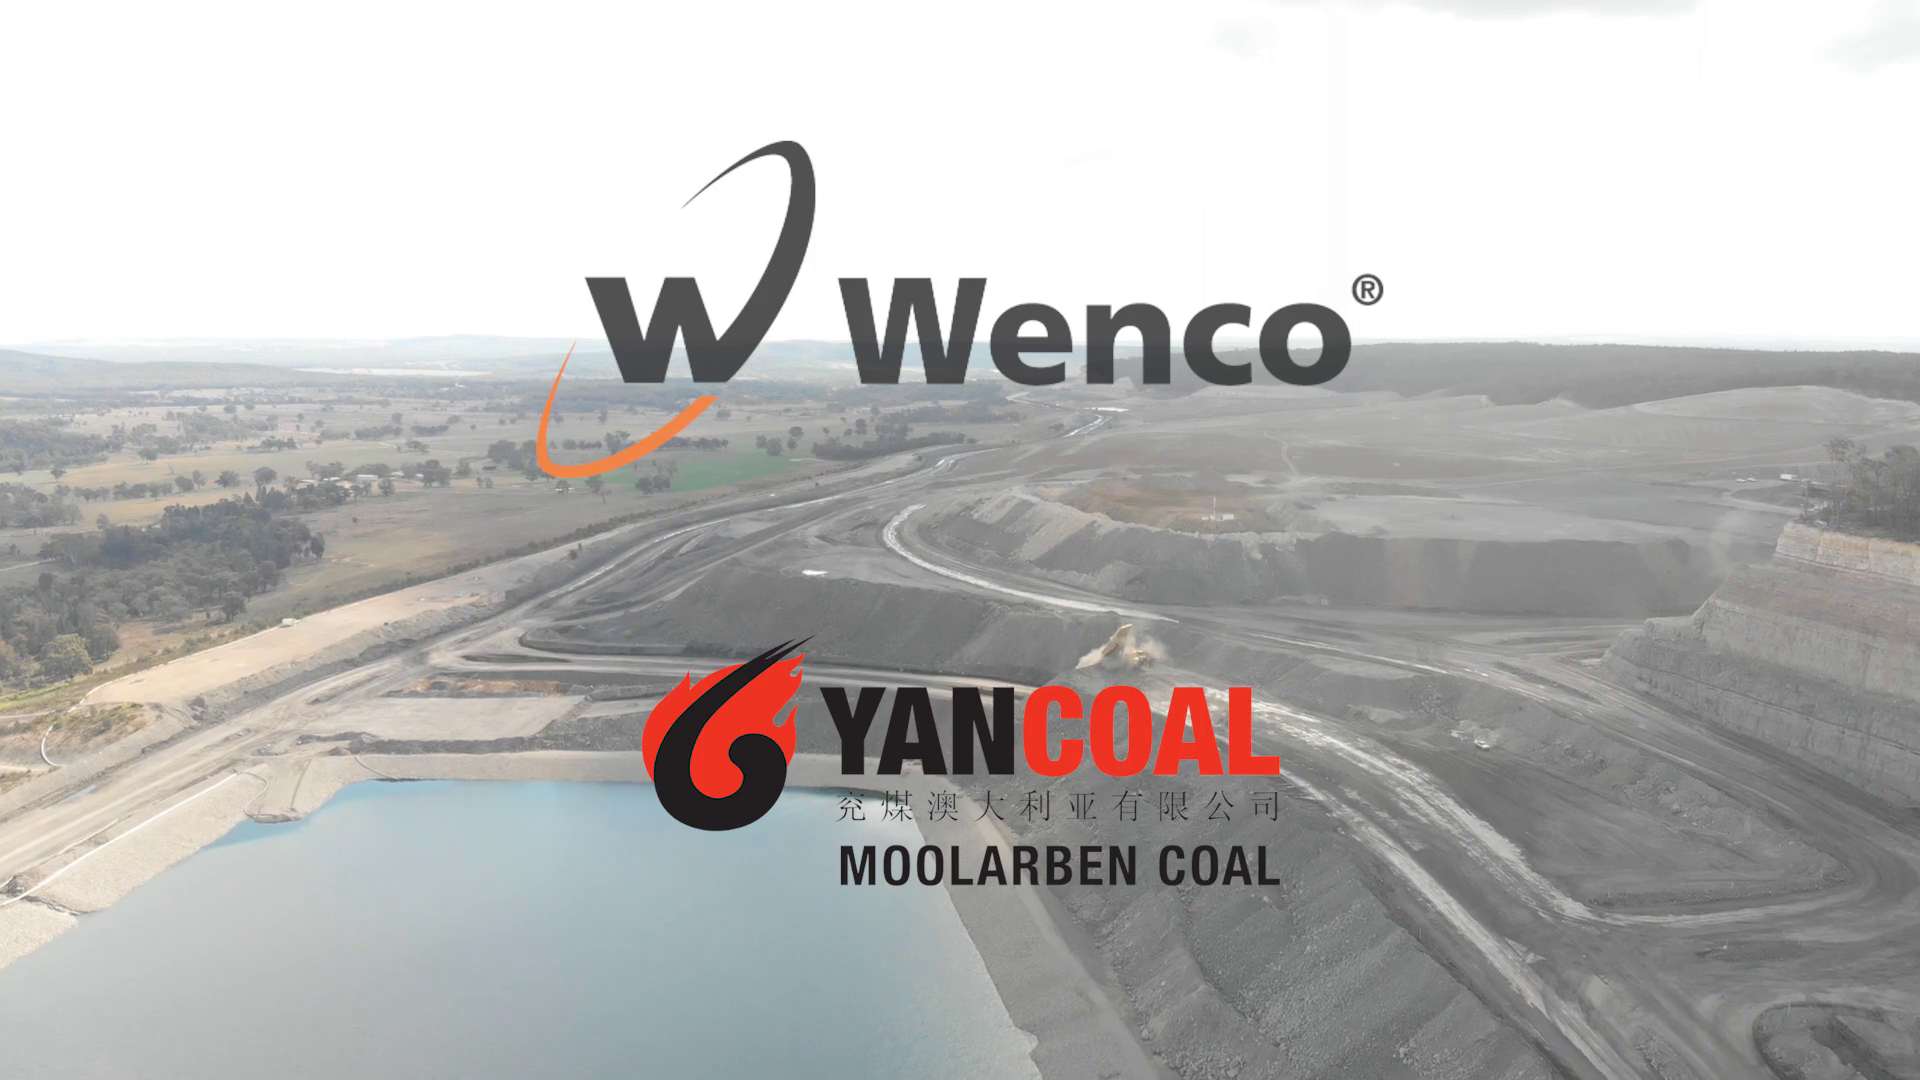 Moolarben Coal Realizes $1 Million in Savings from Wenco FMS